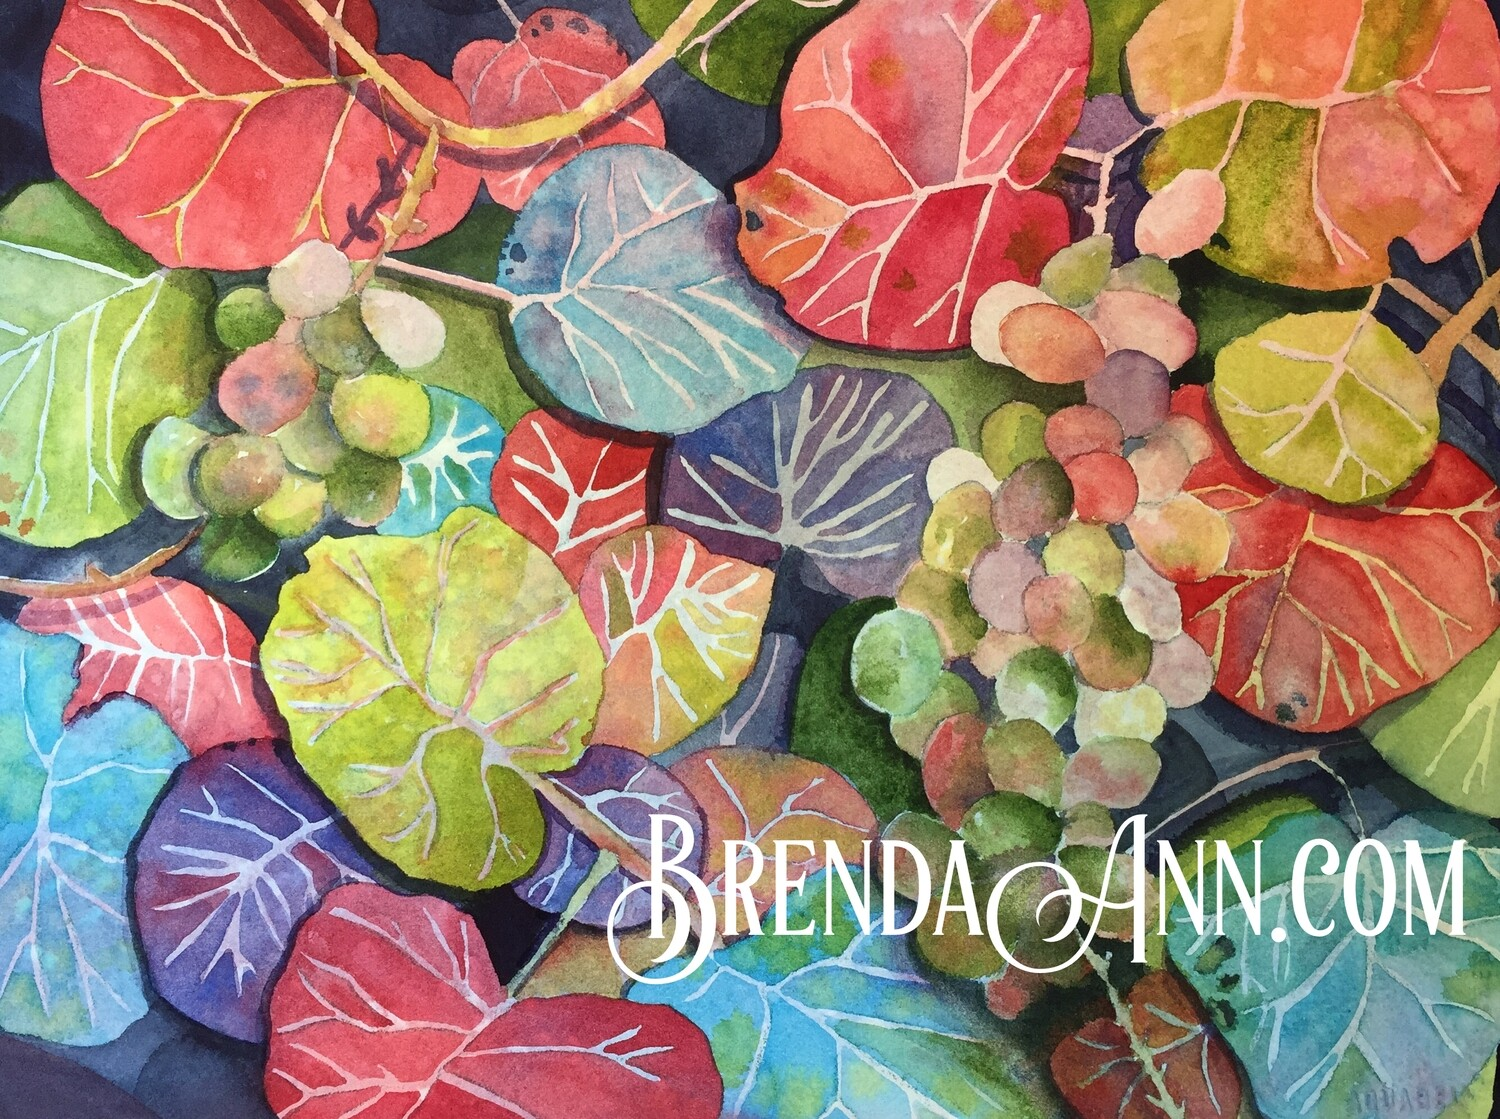 Red Sea Grape Leaves in Key West, FL - Hand Signed Archival Watercolor Print